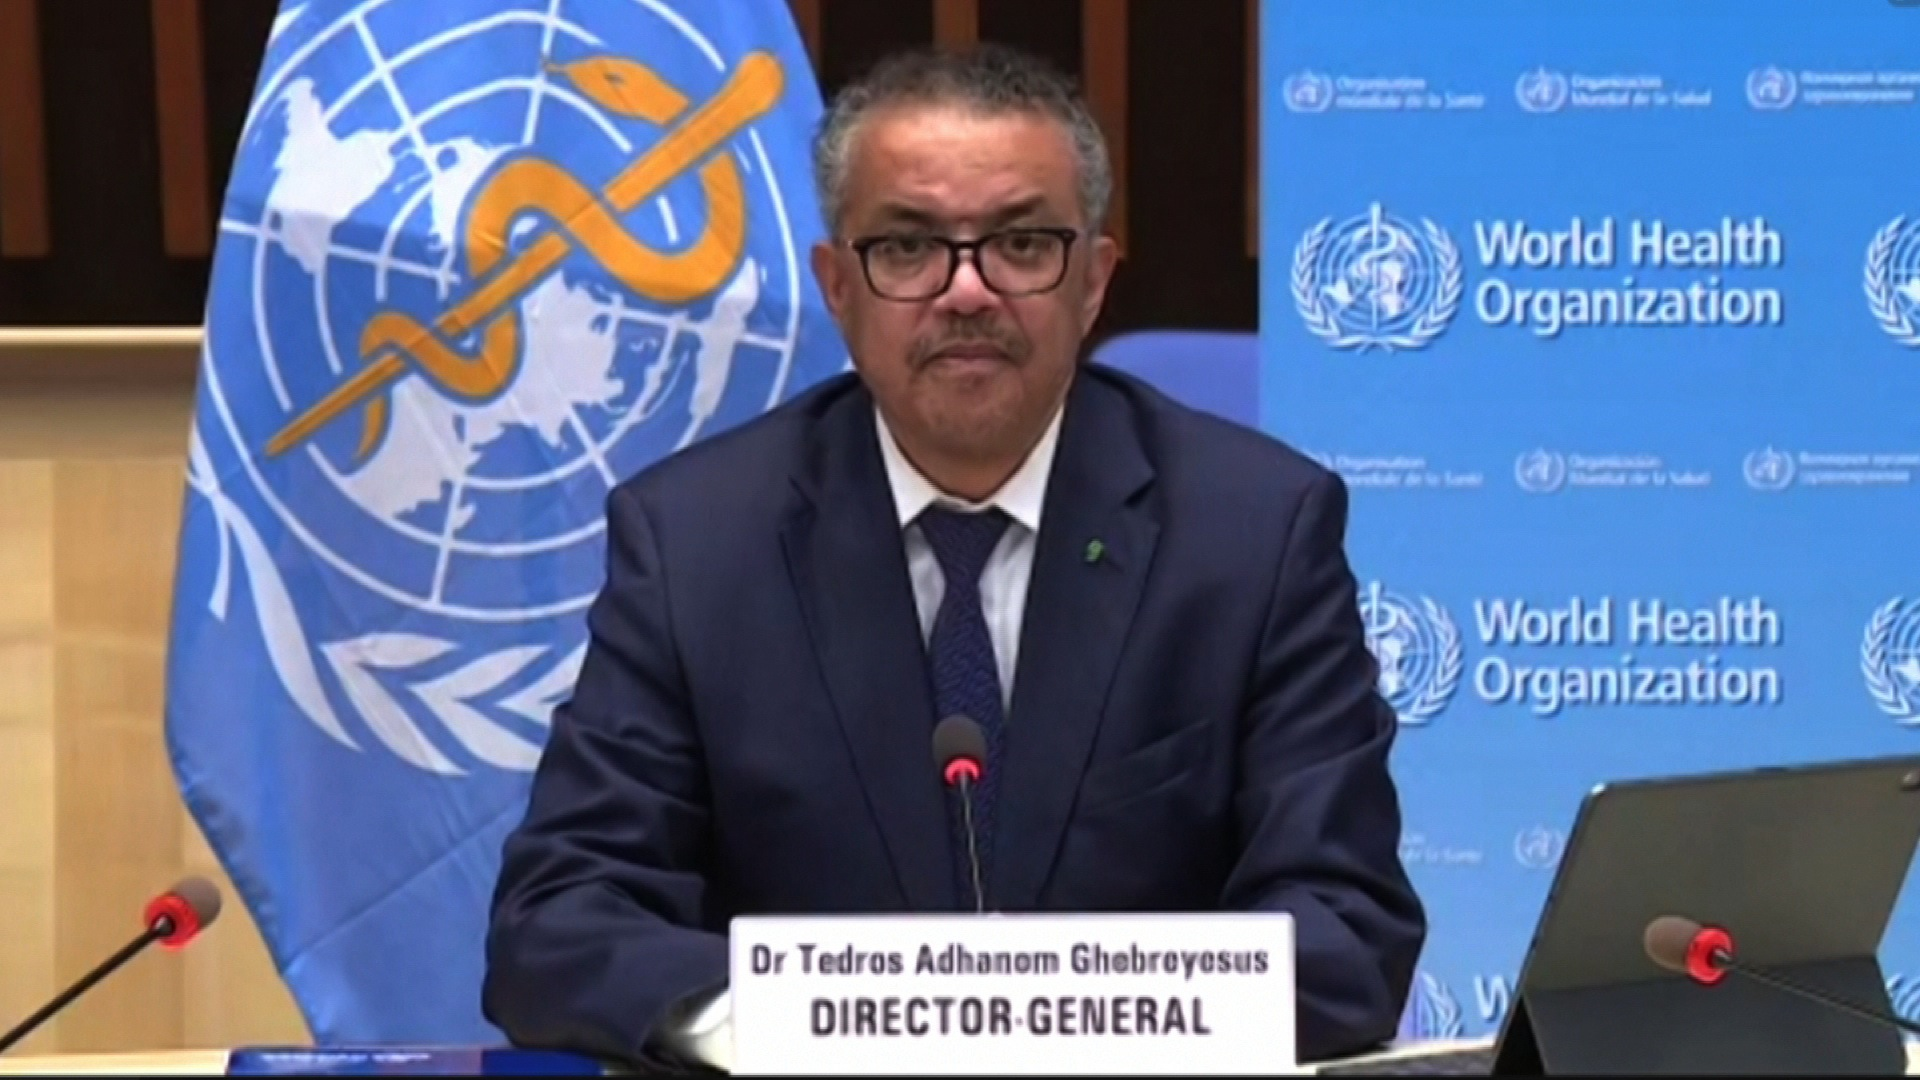 Tedros Adhanom Ghebreyesus speaks at a briefing in Geneva, Switzerland, on October 12.